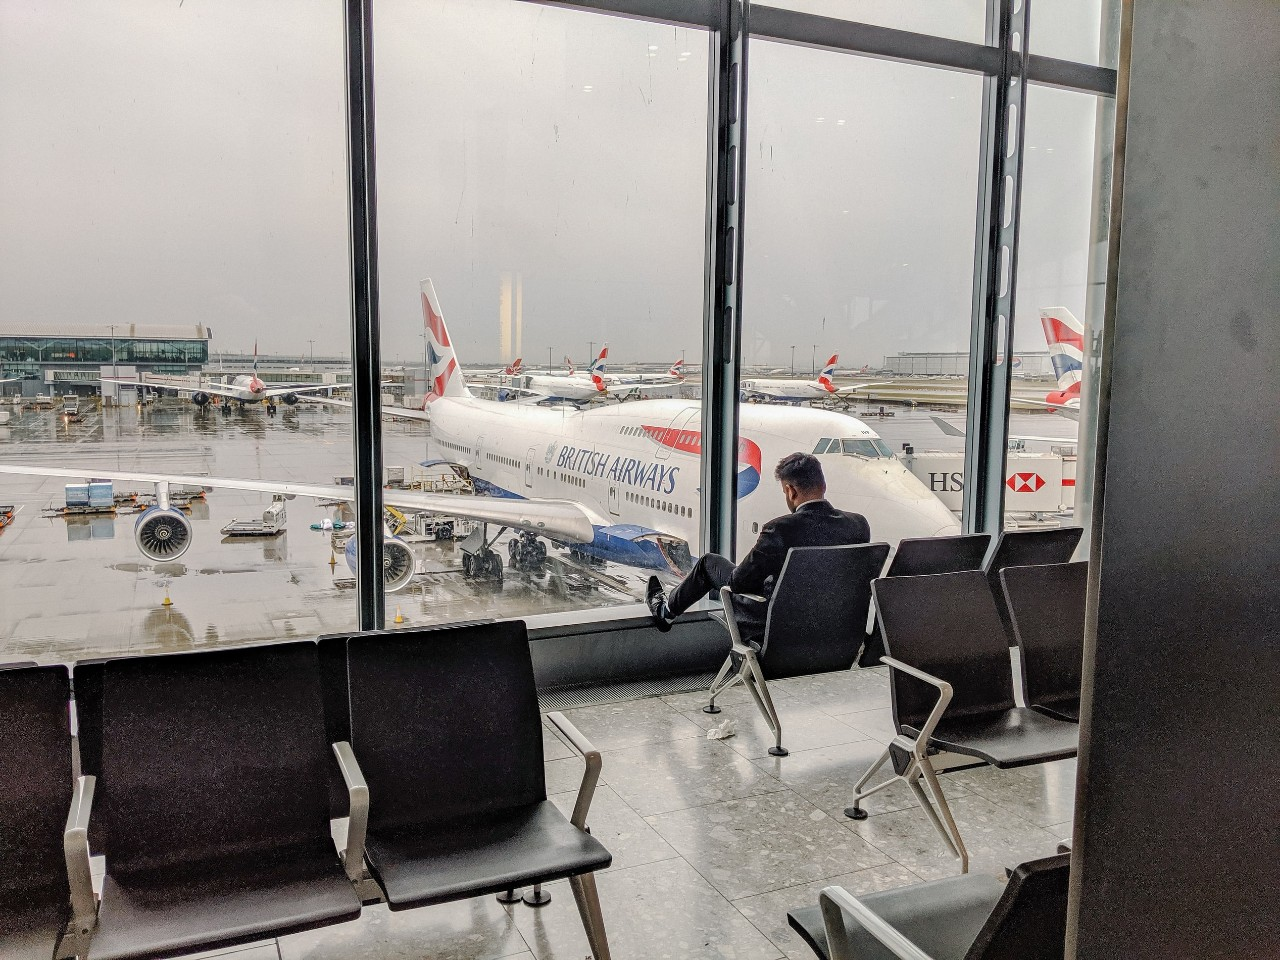 A man waits at an airport terminal overlooking an airliner.